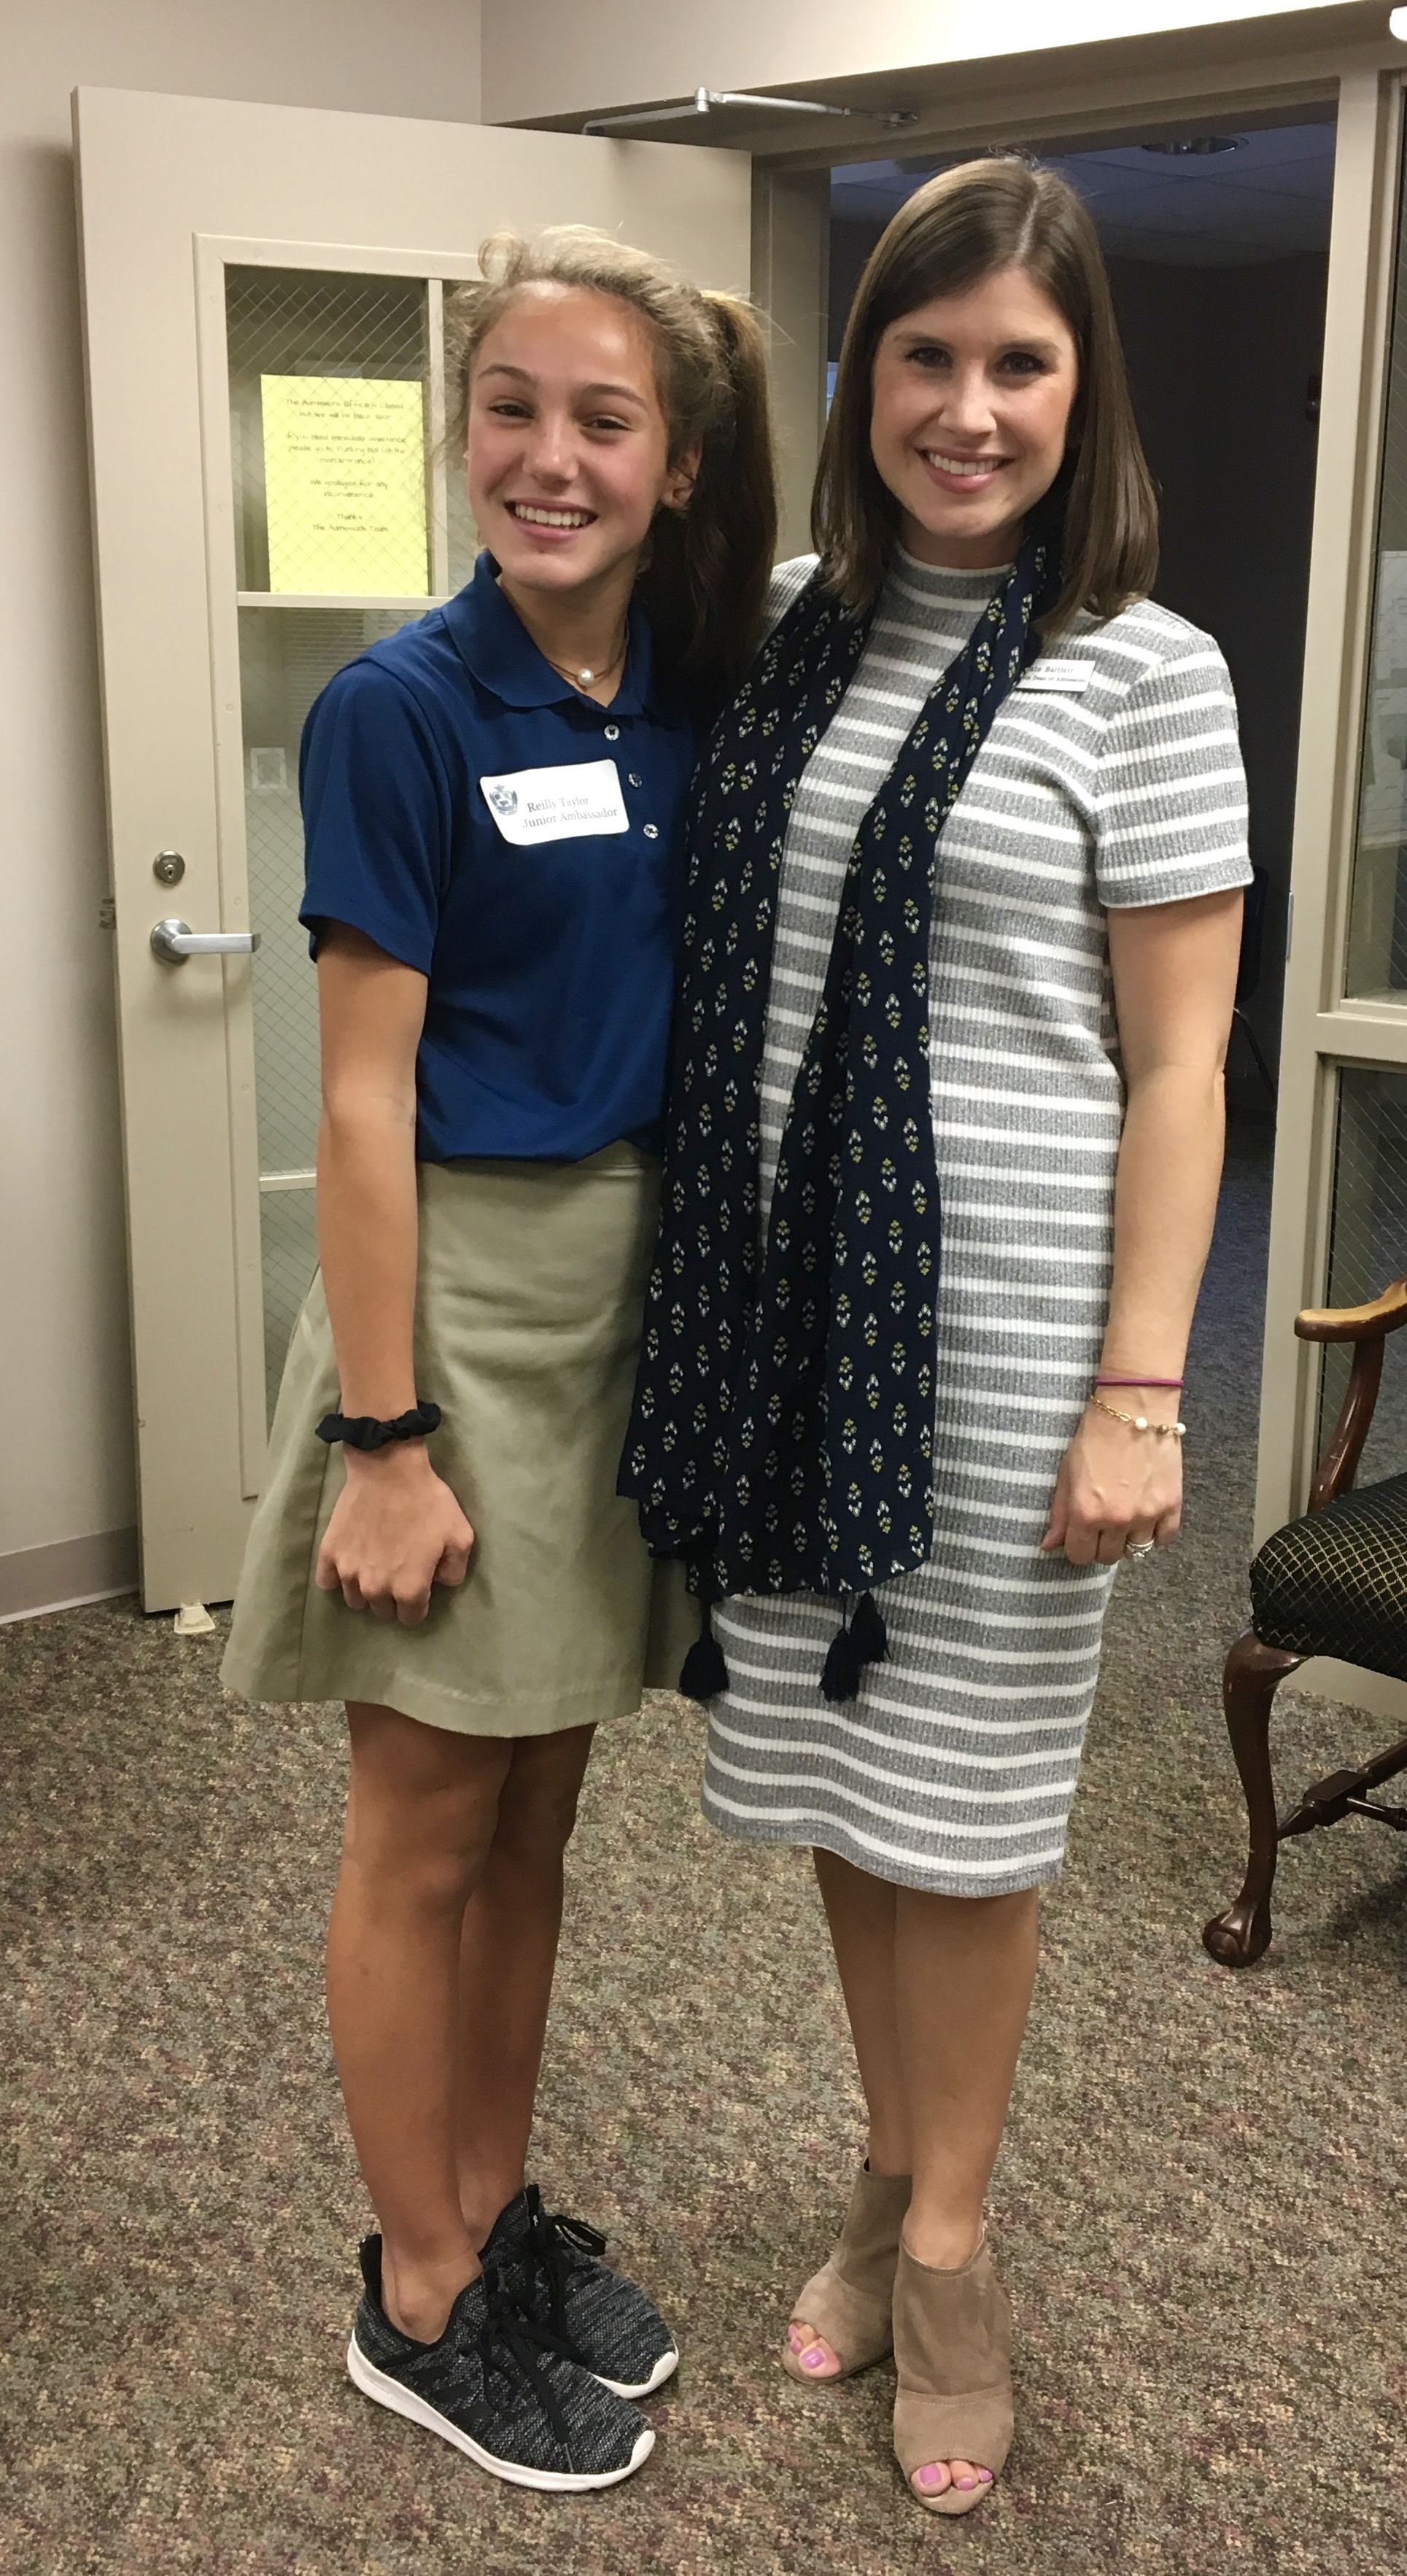 Reilly Taylor, STJ 7th grader, with our Associate Dean of Admissions, Kate Bartlett